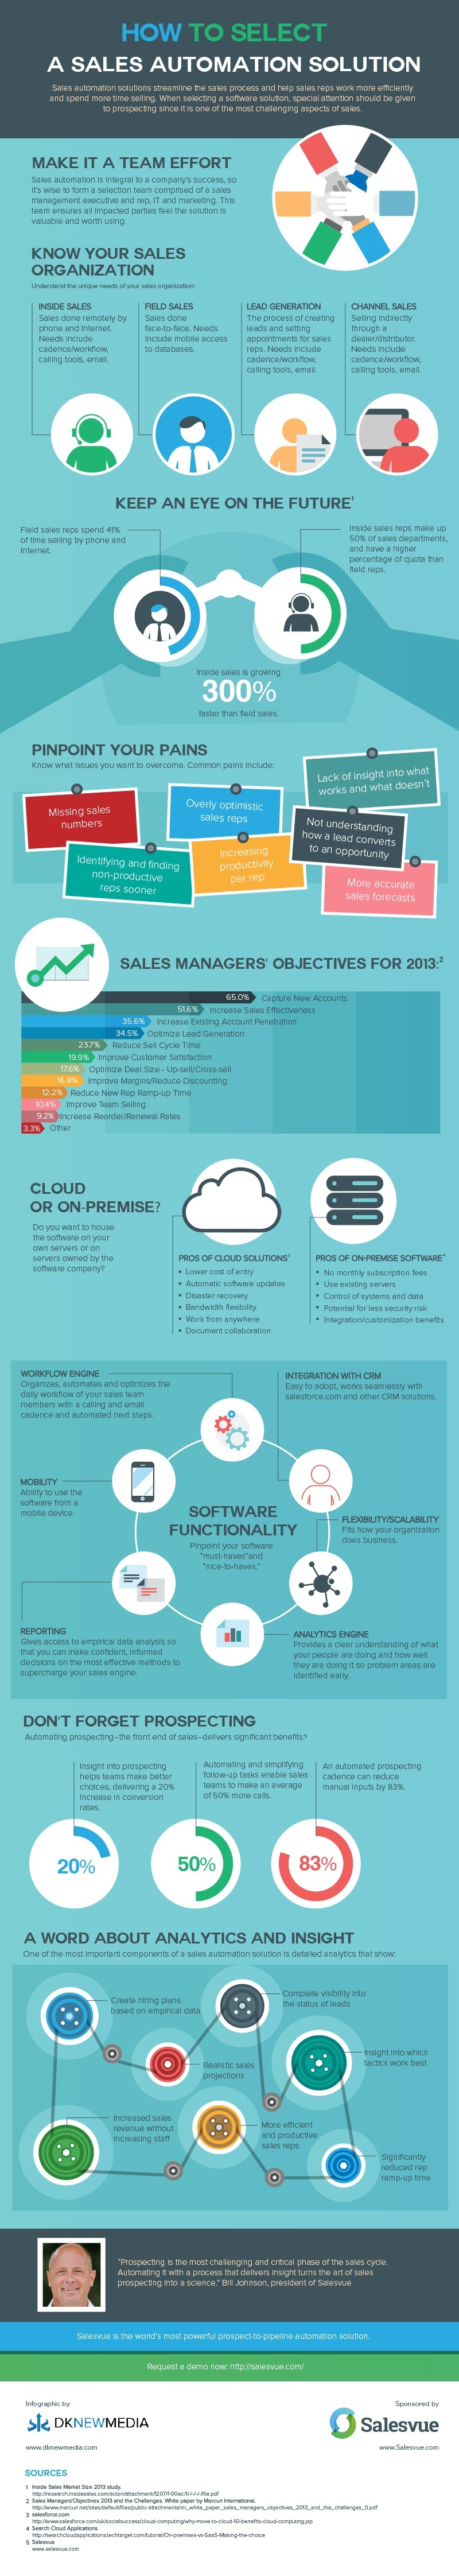 How to Select a Sales Automation Solution infographic